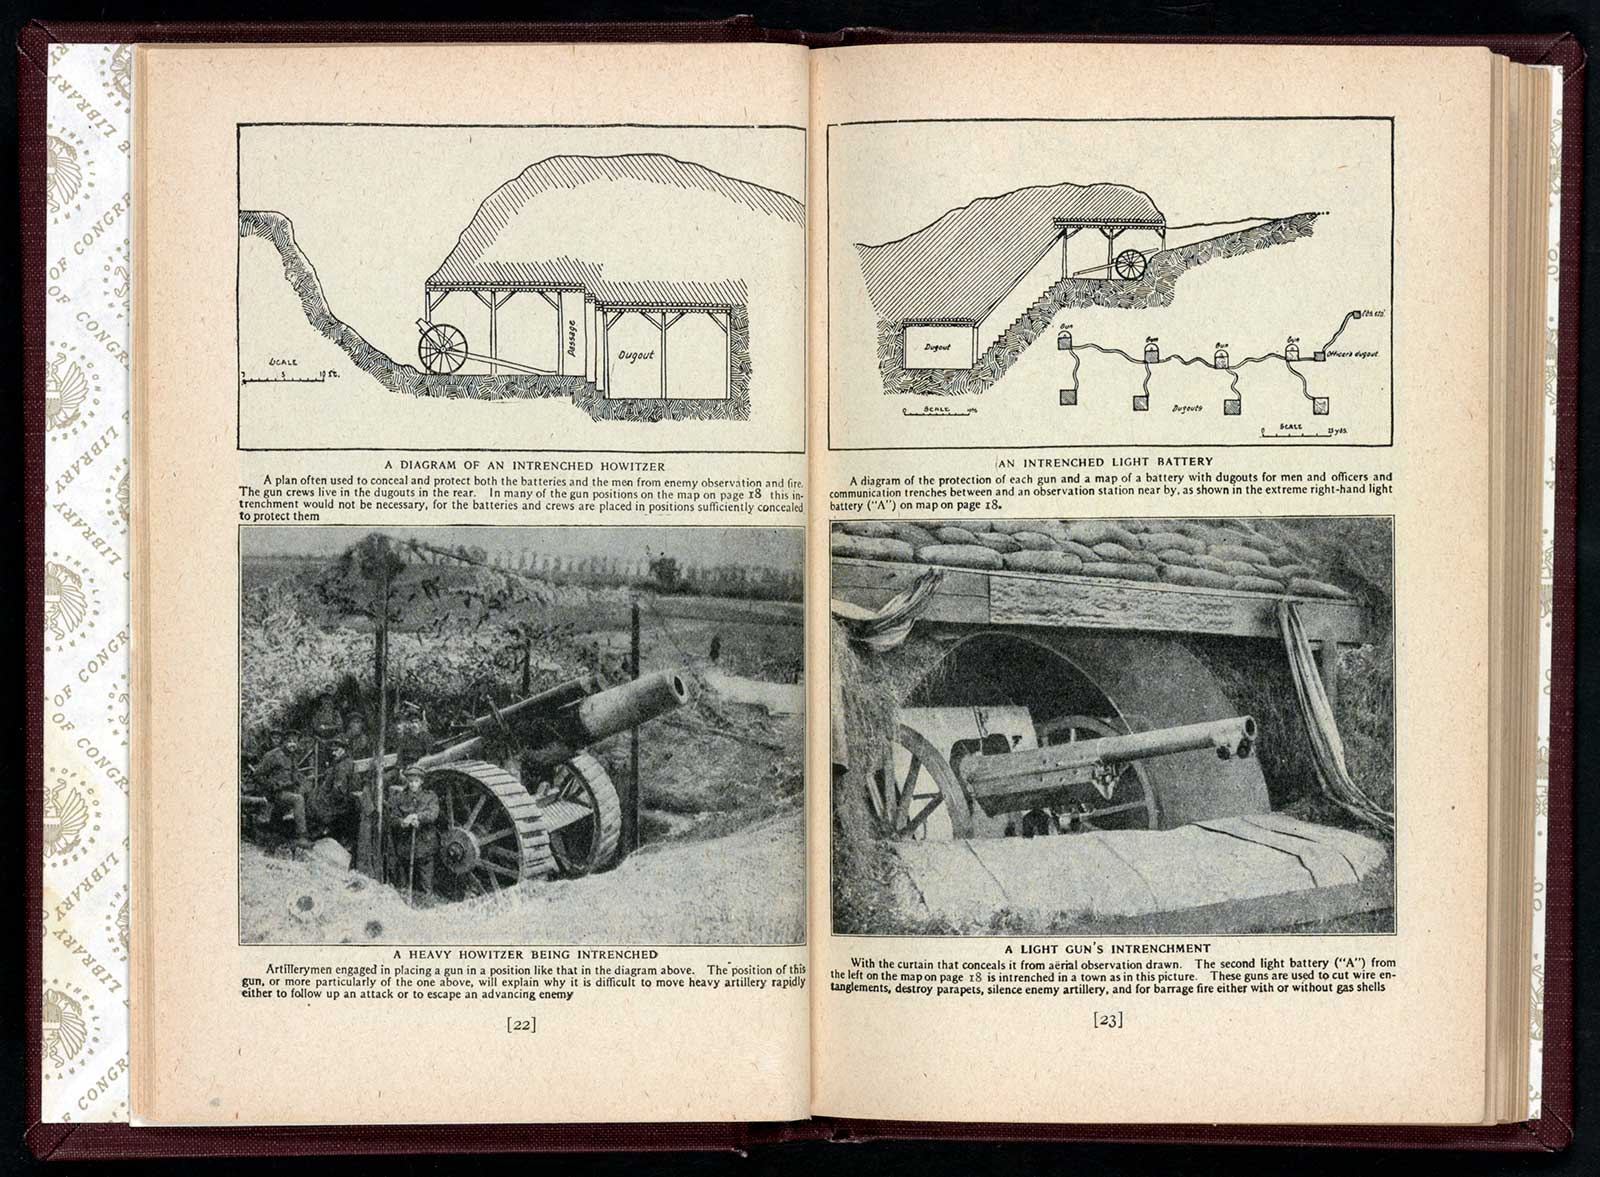 hight resolution of  a practical manual for the training and instruction of officers and men in trench warfare menasha wisconsin geo banta publishing company ca